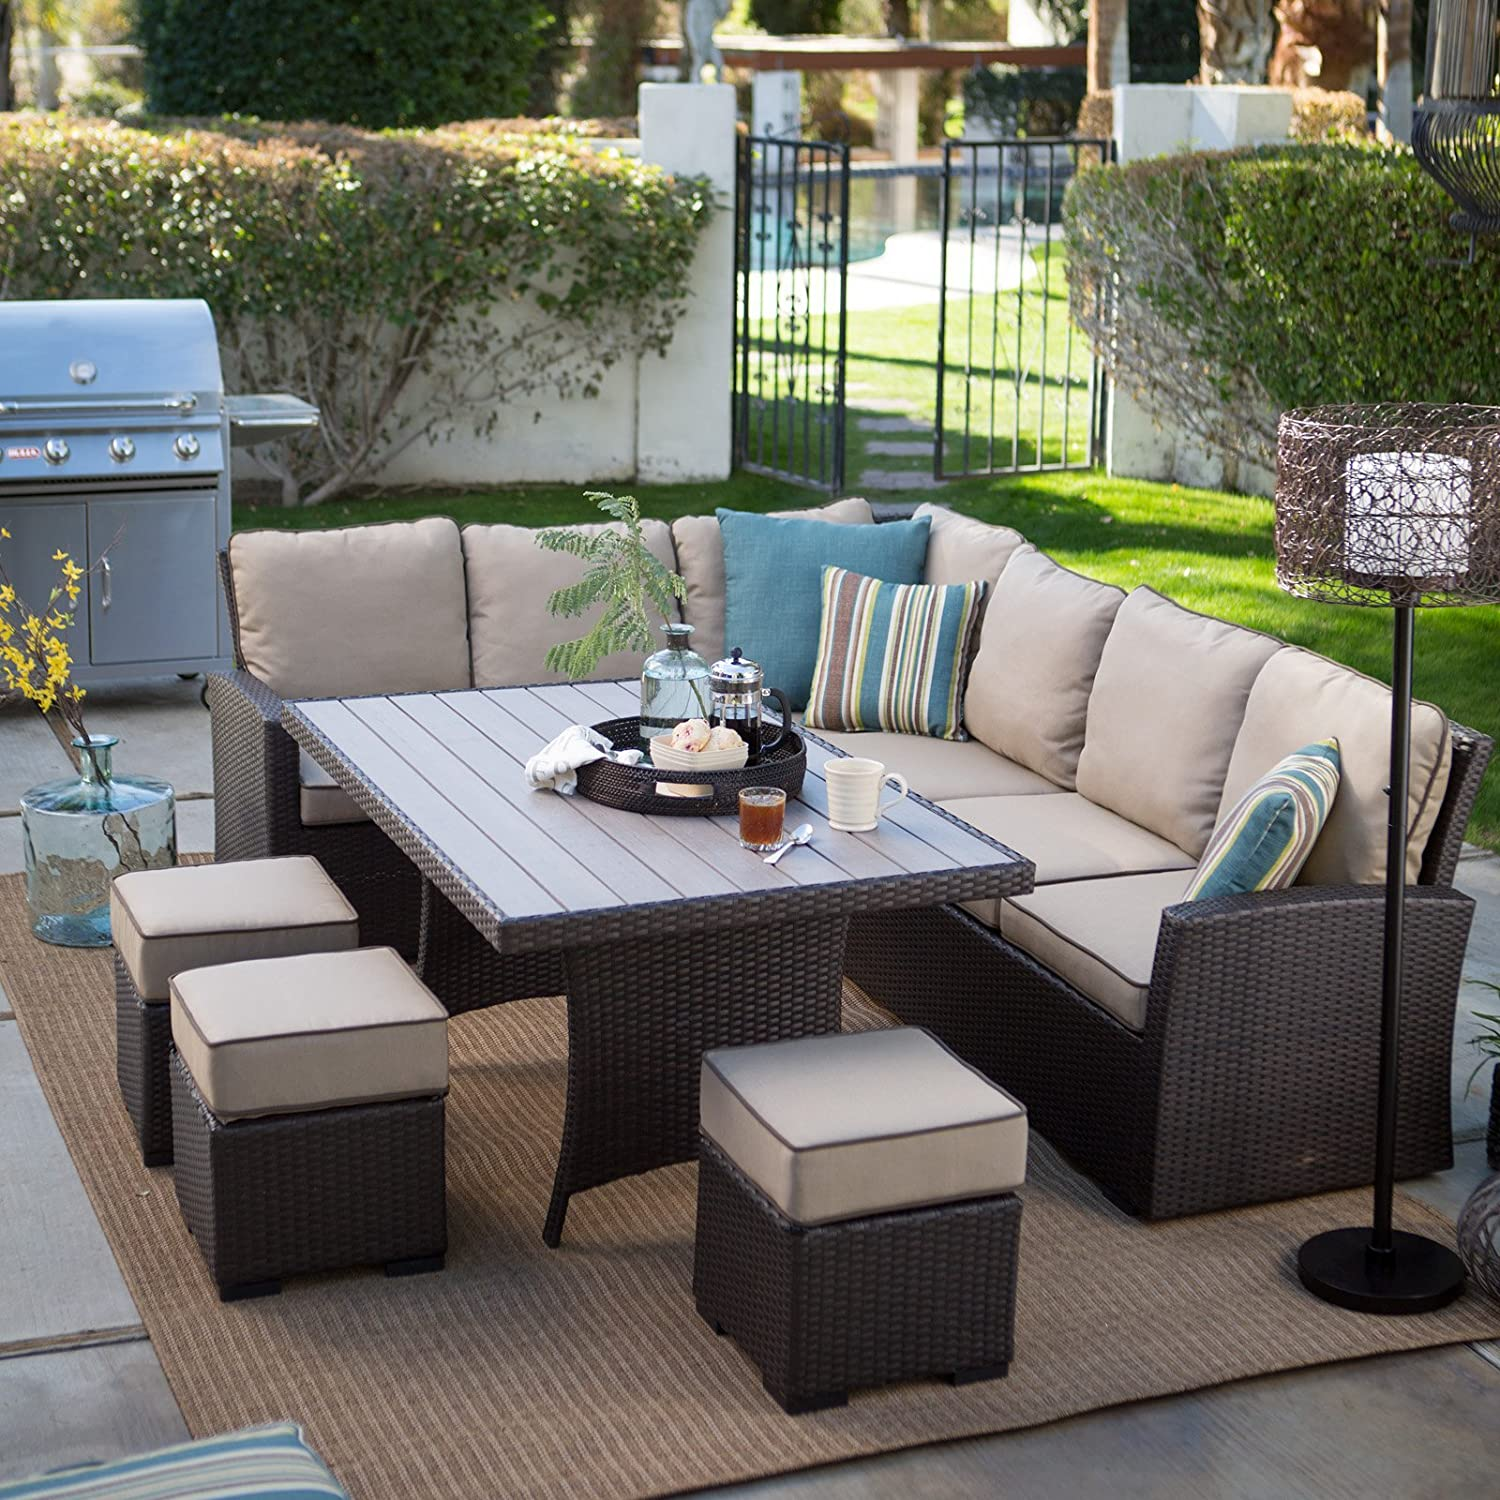 Amazon.com  Dark Brown Modern All Weather Wicker Aluminum Sofa Sectional Patio Dining Set | Perfect Contemporary Cushioned Sofa Right \u0026 Left Arm ... & Amazon.com : Dark Brown Modern All Weather Wicker Aluminum Sofa ...